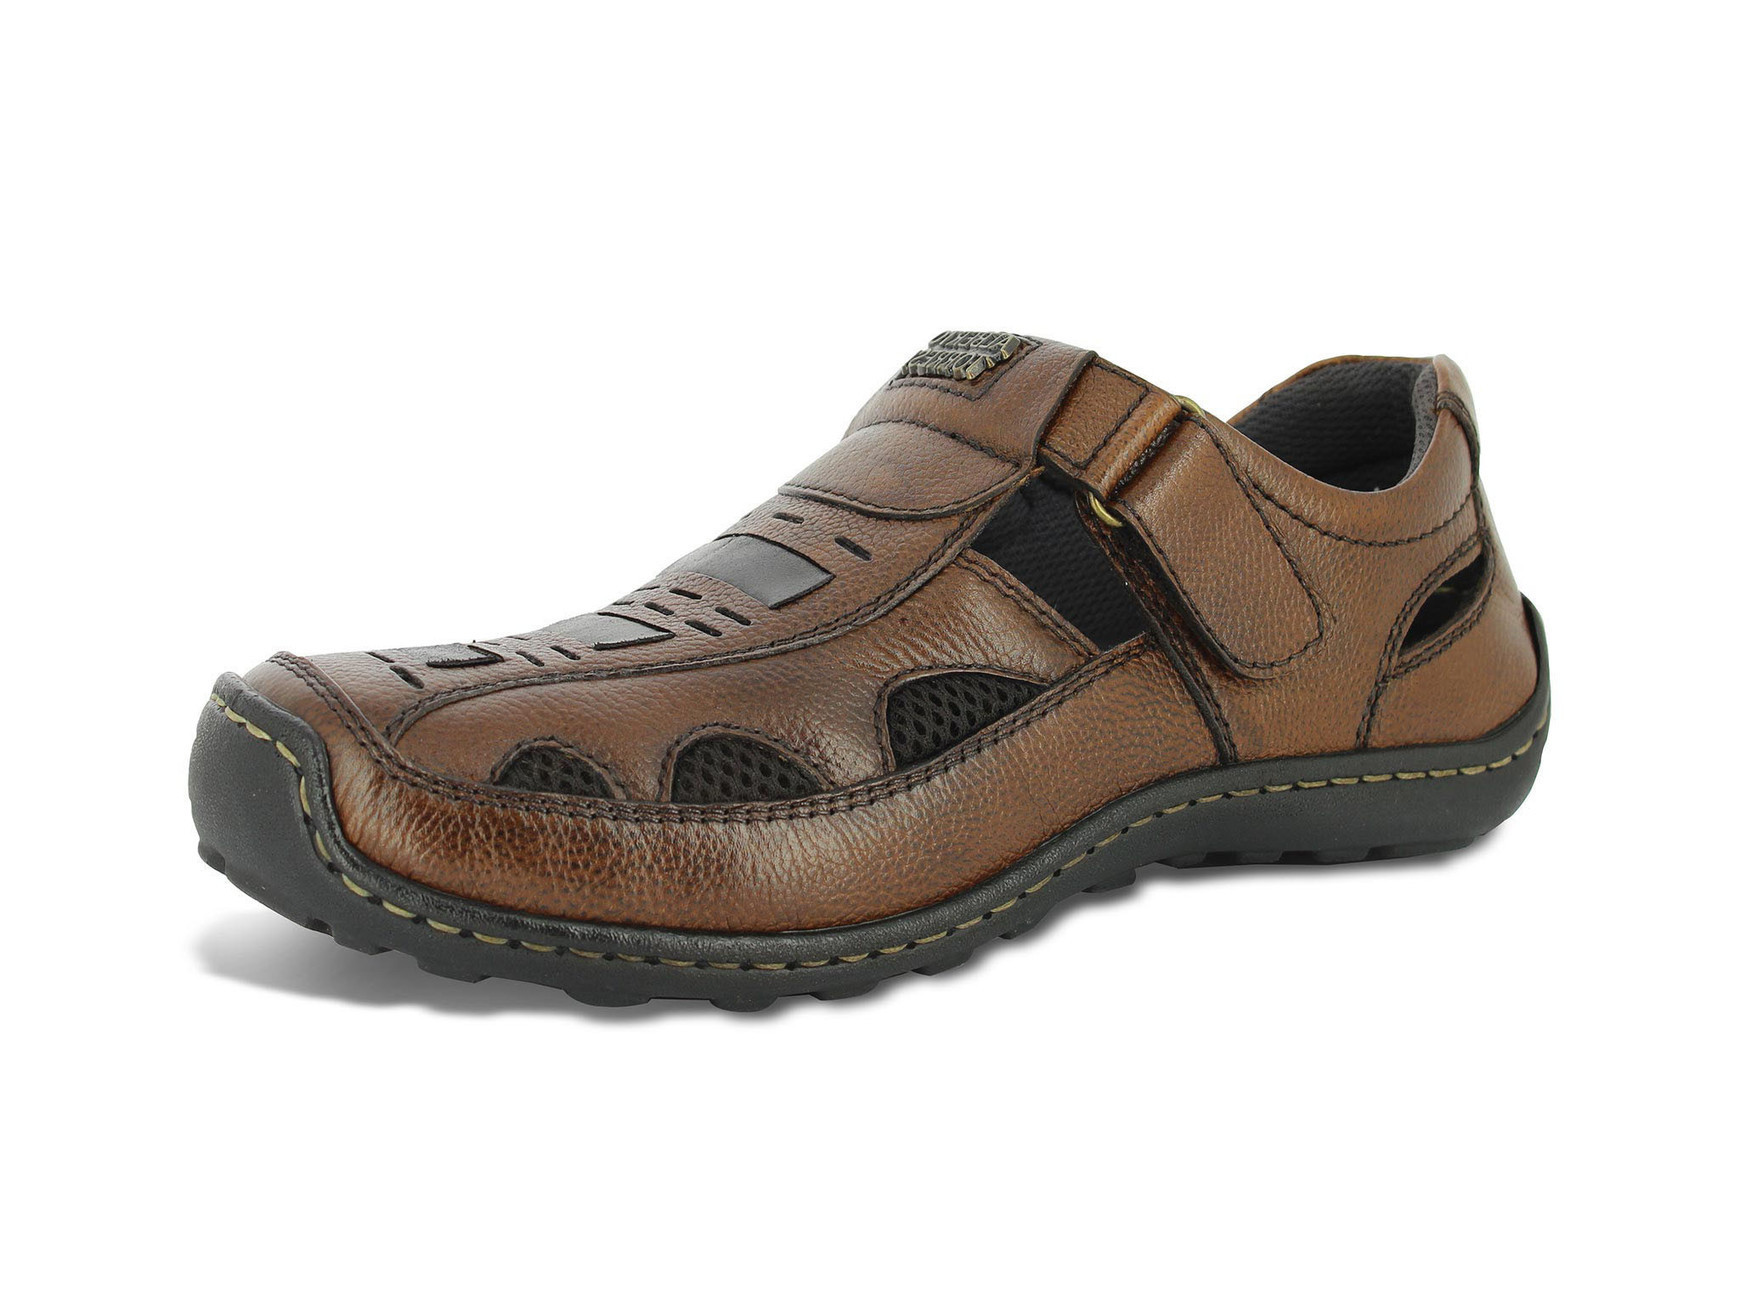 76f2b1a16f4cd Alberto Torresi Antonio Brown Sandals for Men